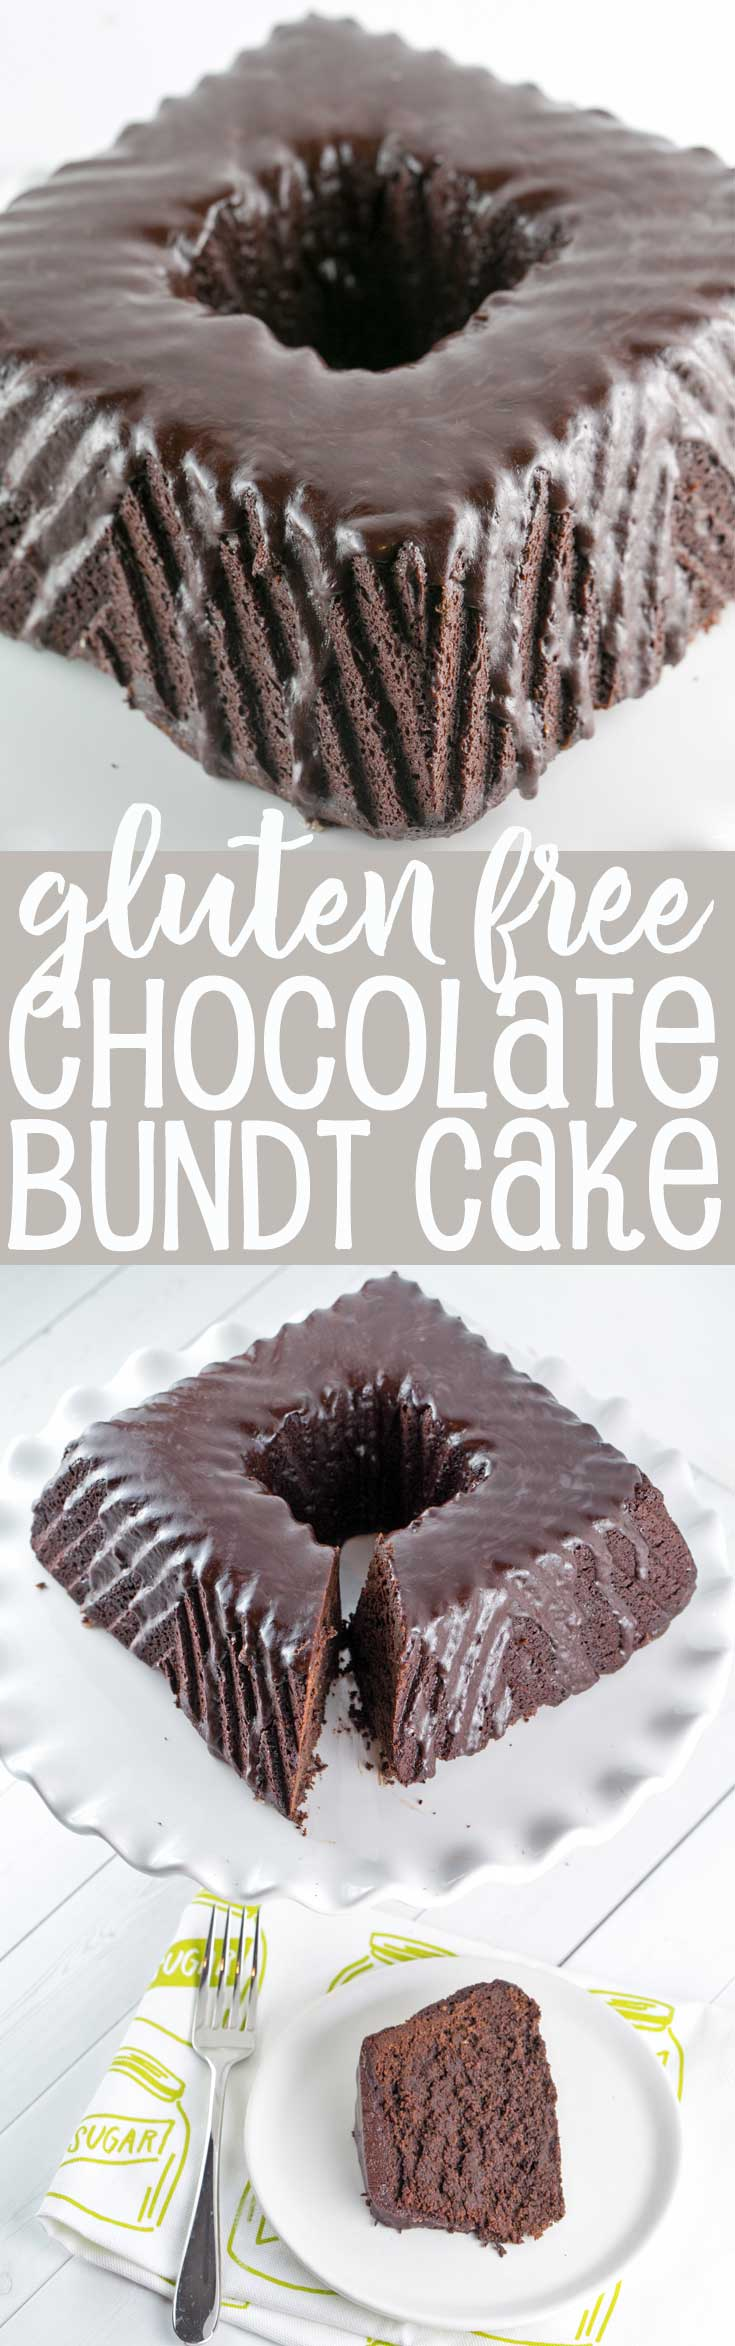 Free Chocolate Bundt Cake: The ultimate Passover-friendly, gluten free ...